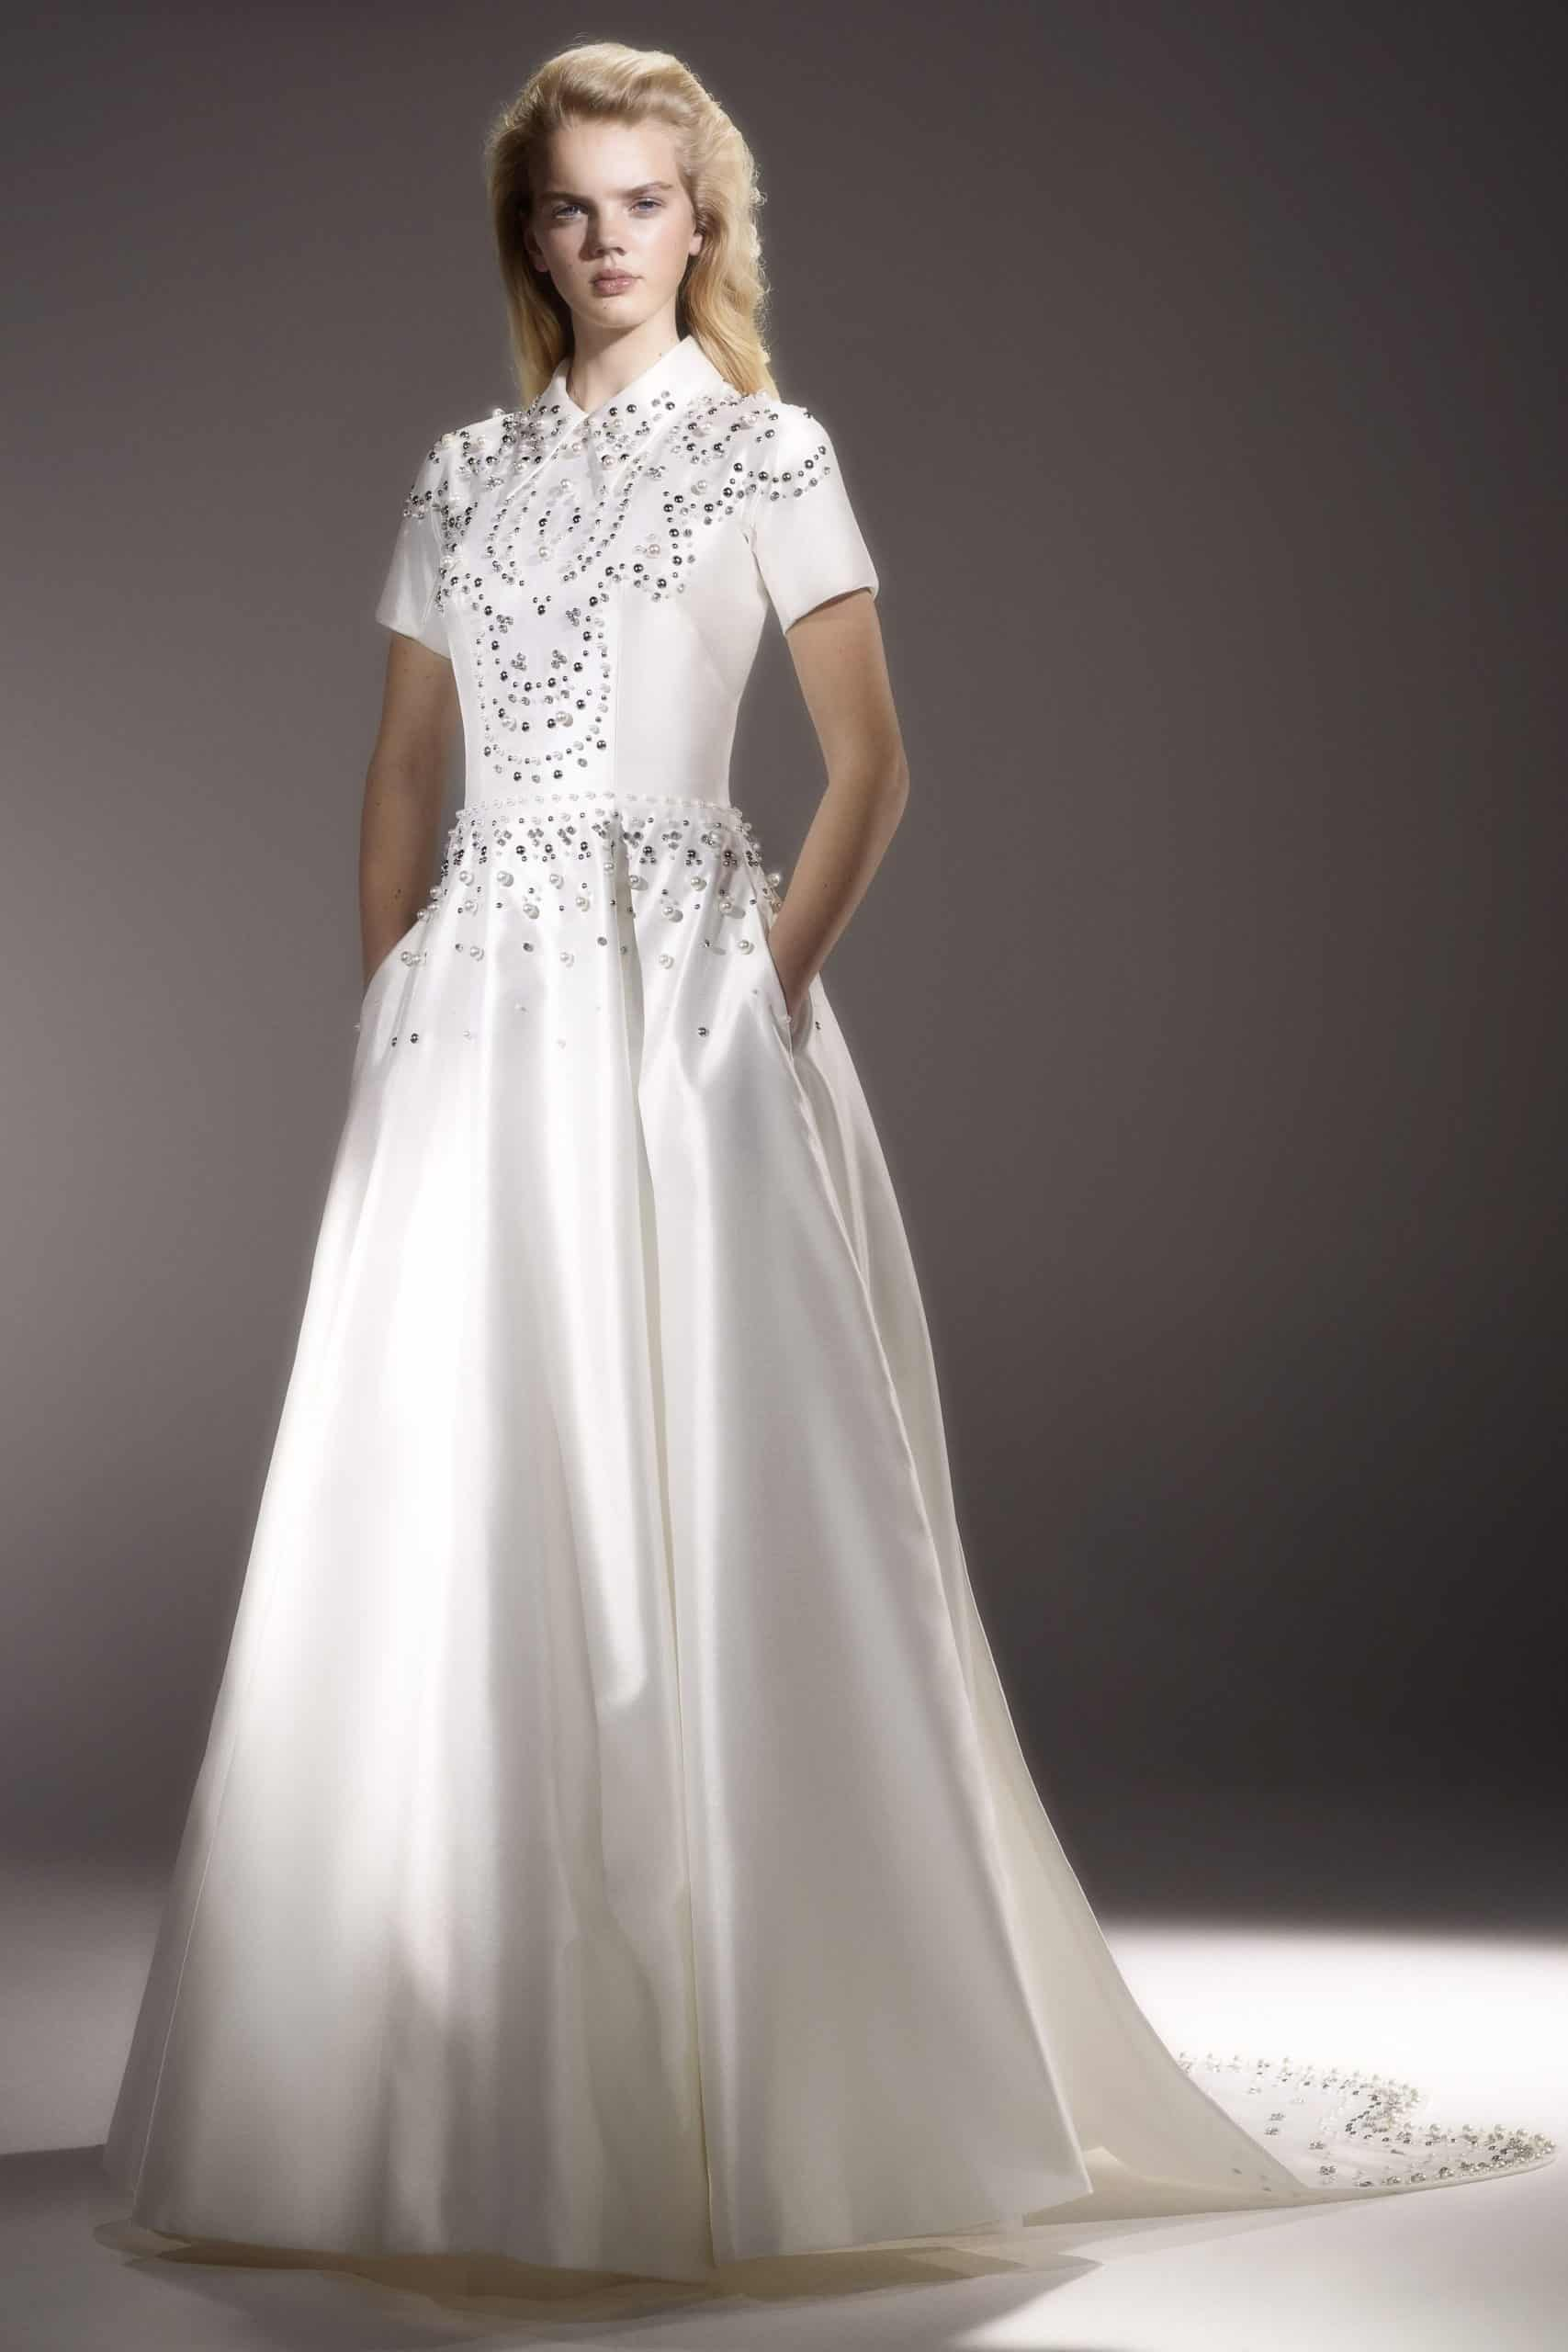 a-line wedding dress with diamonds by Viktor and Rolf